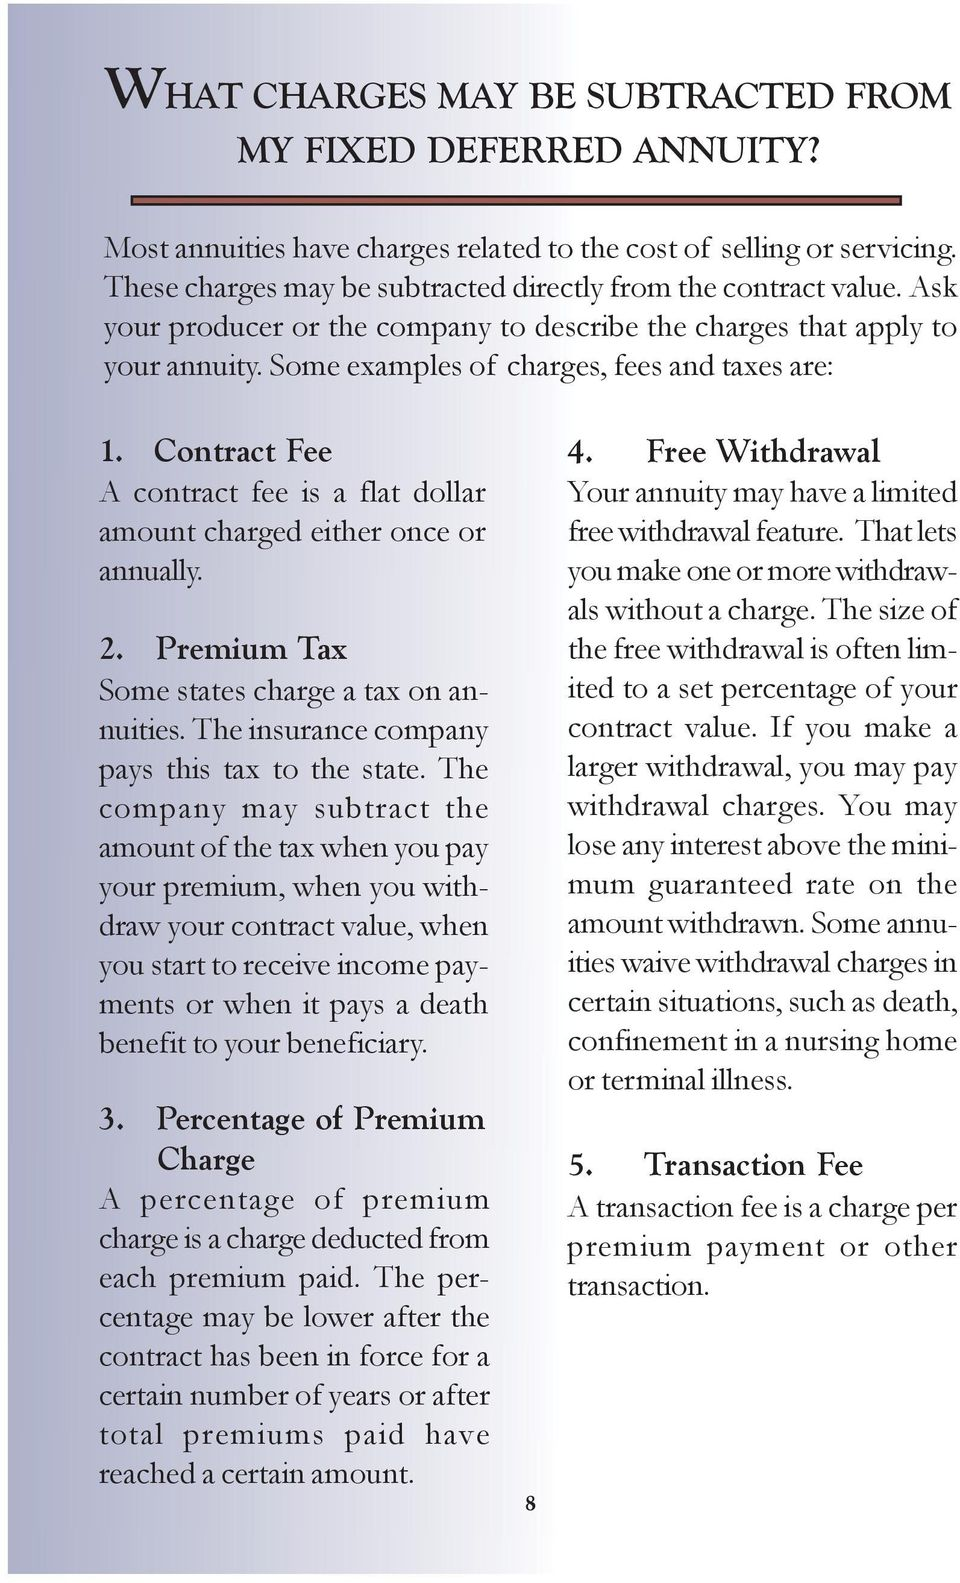 Contract Fee A contract fee is a flat dollar amount charged either once or annually. 2. Premium Tax Some states charge a tax on annuities. The insurance company pays this tax to the state.